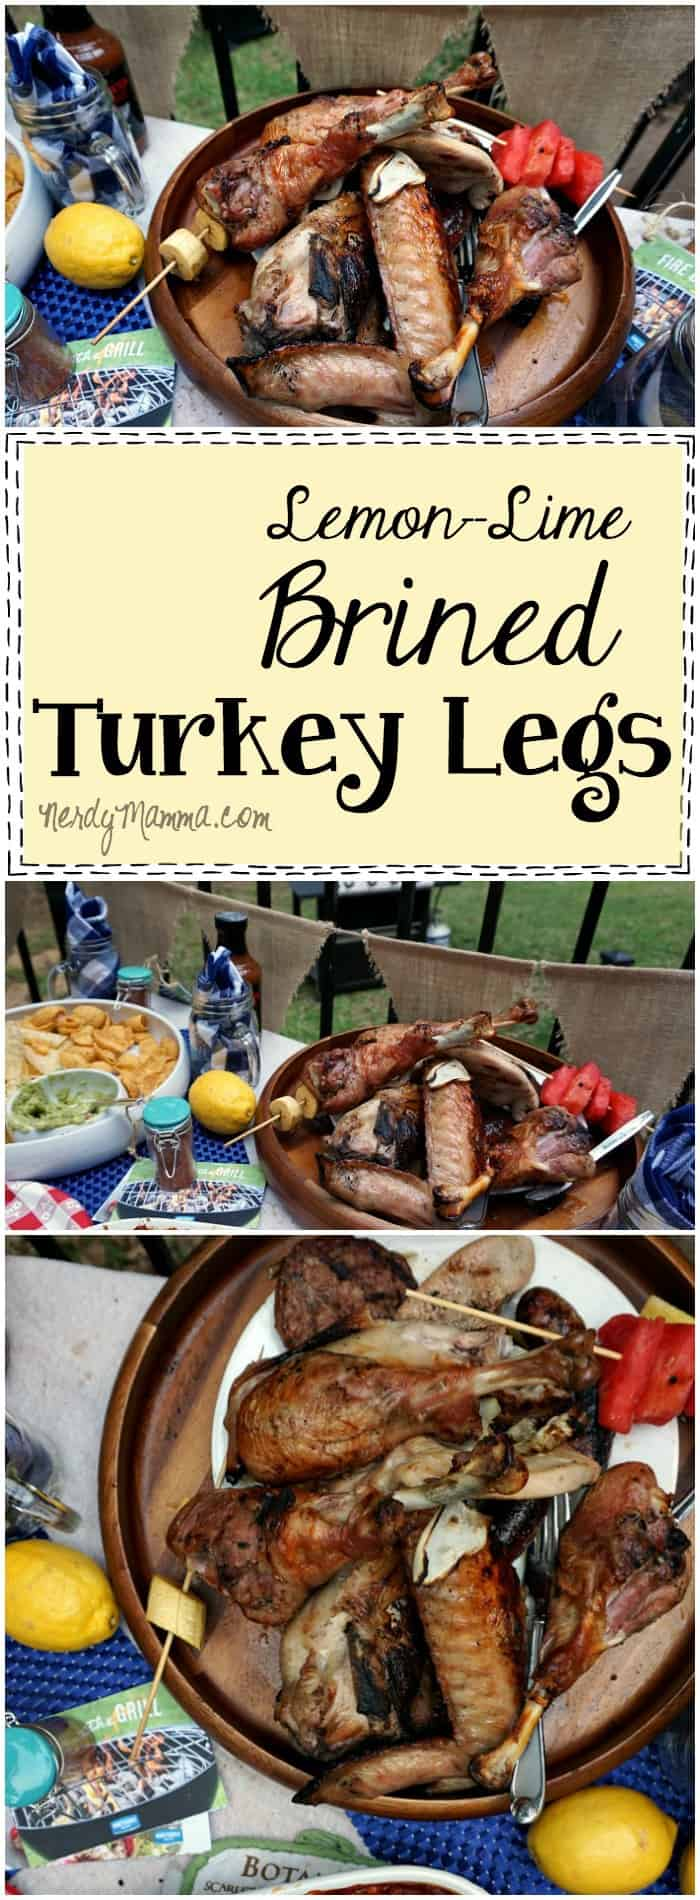 This recipe for Lemon-Lime Brined Turkey Legs is so easy!!! I can't wait to try it this summer on the grill!